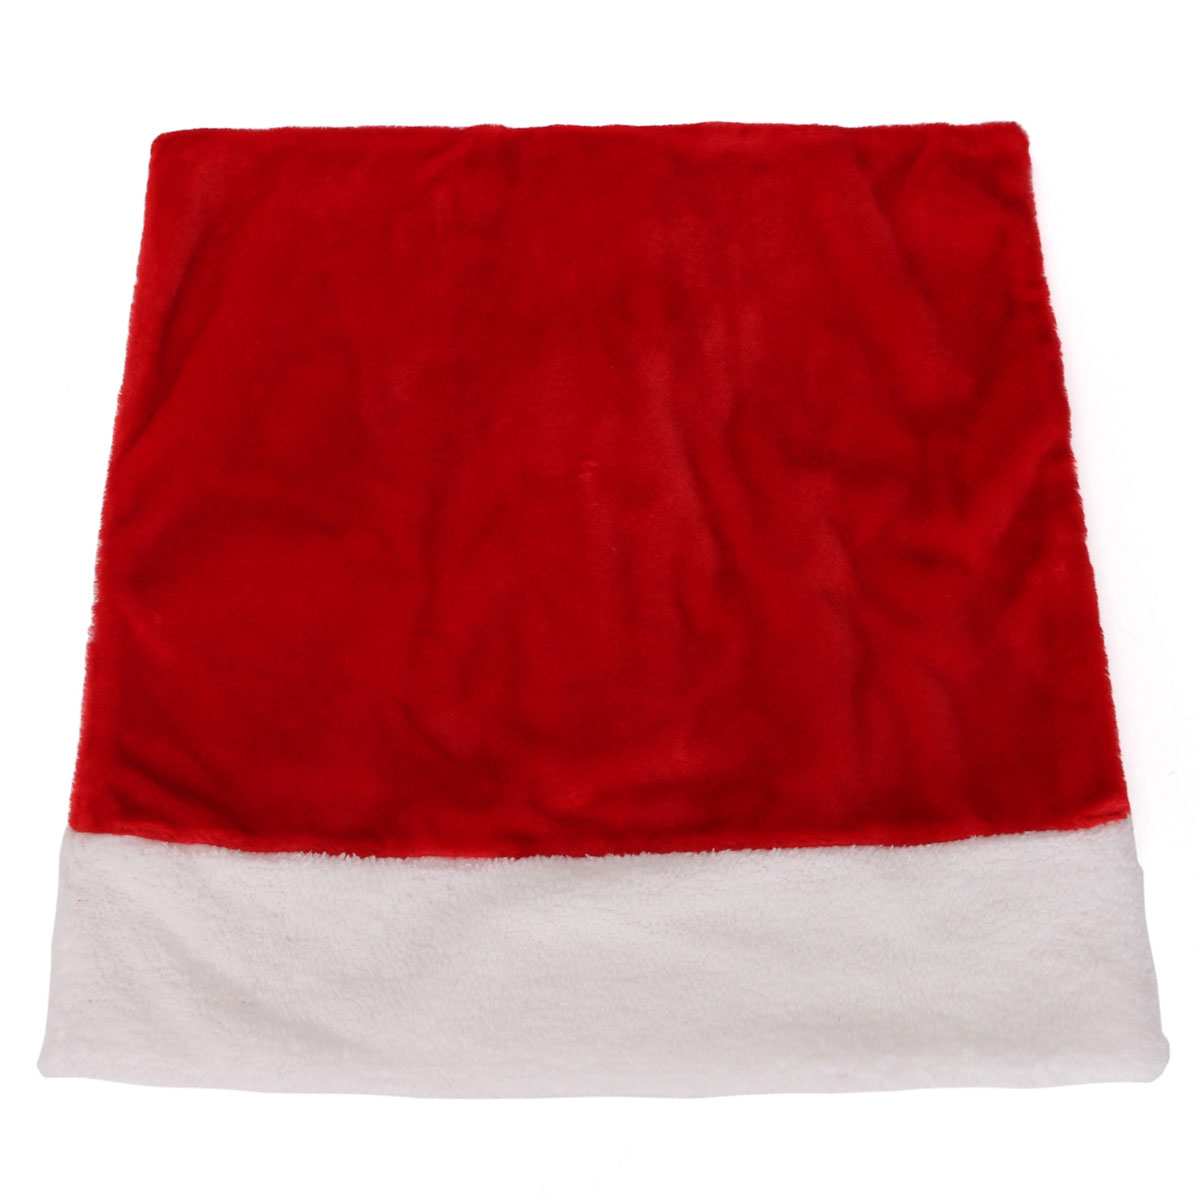 santa chair covers australia what a christmas cover claus dinner decoration